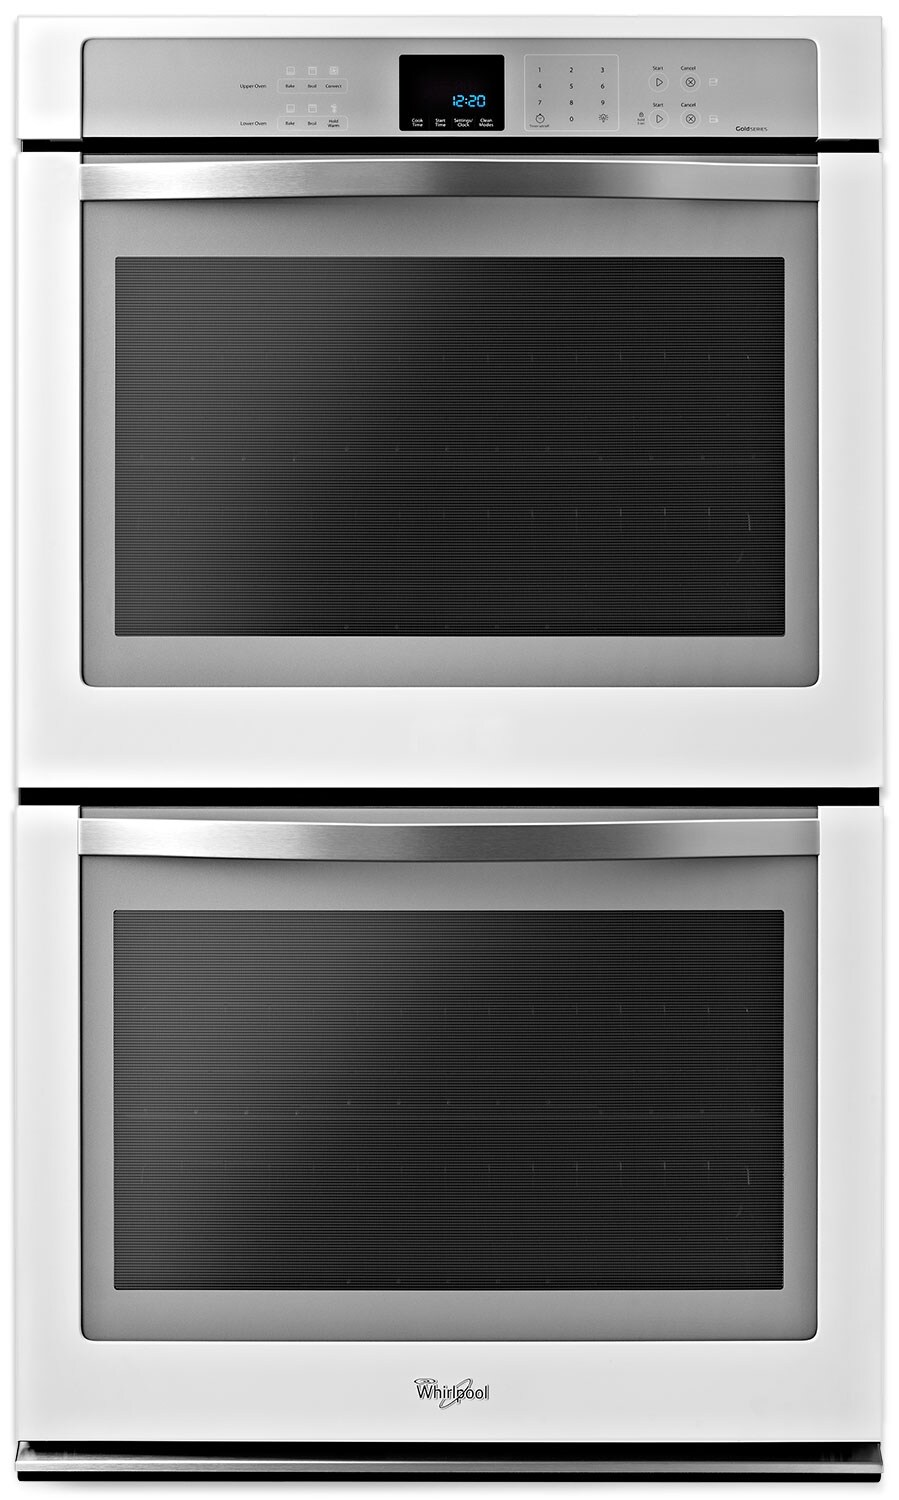 Whirlpool White Convection Double Wall Oven (10 Cu. Ft.) - WOD93EC0AH